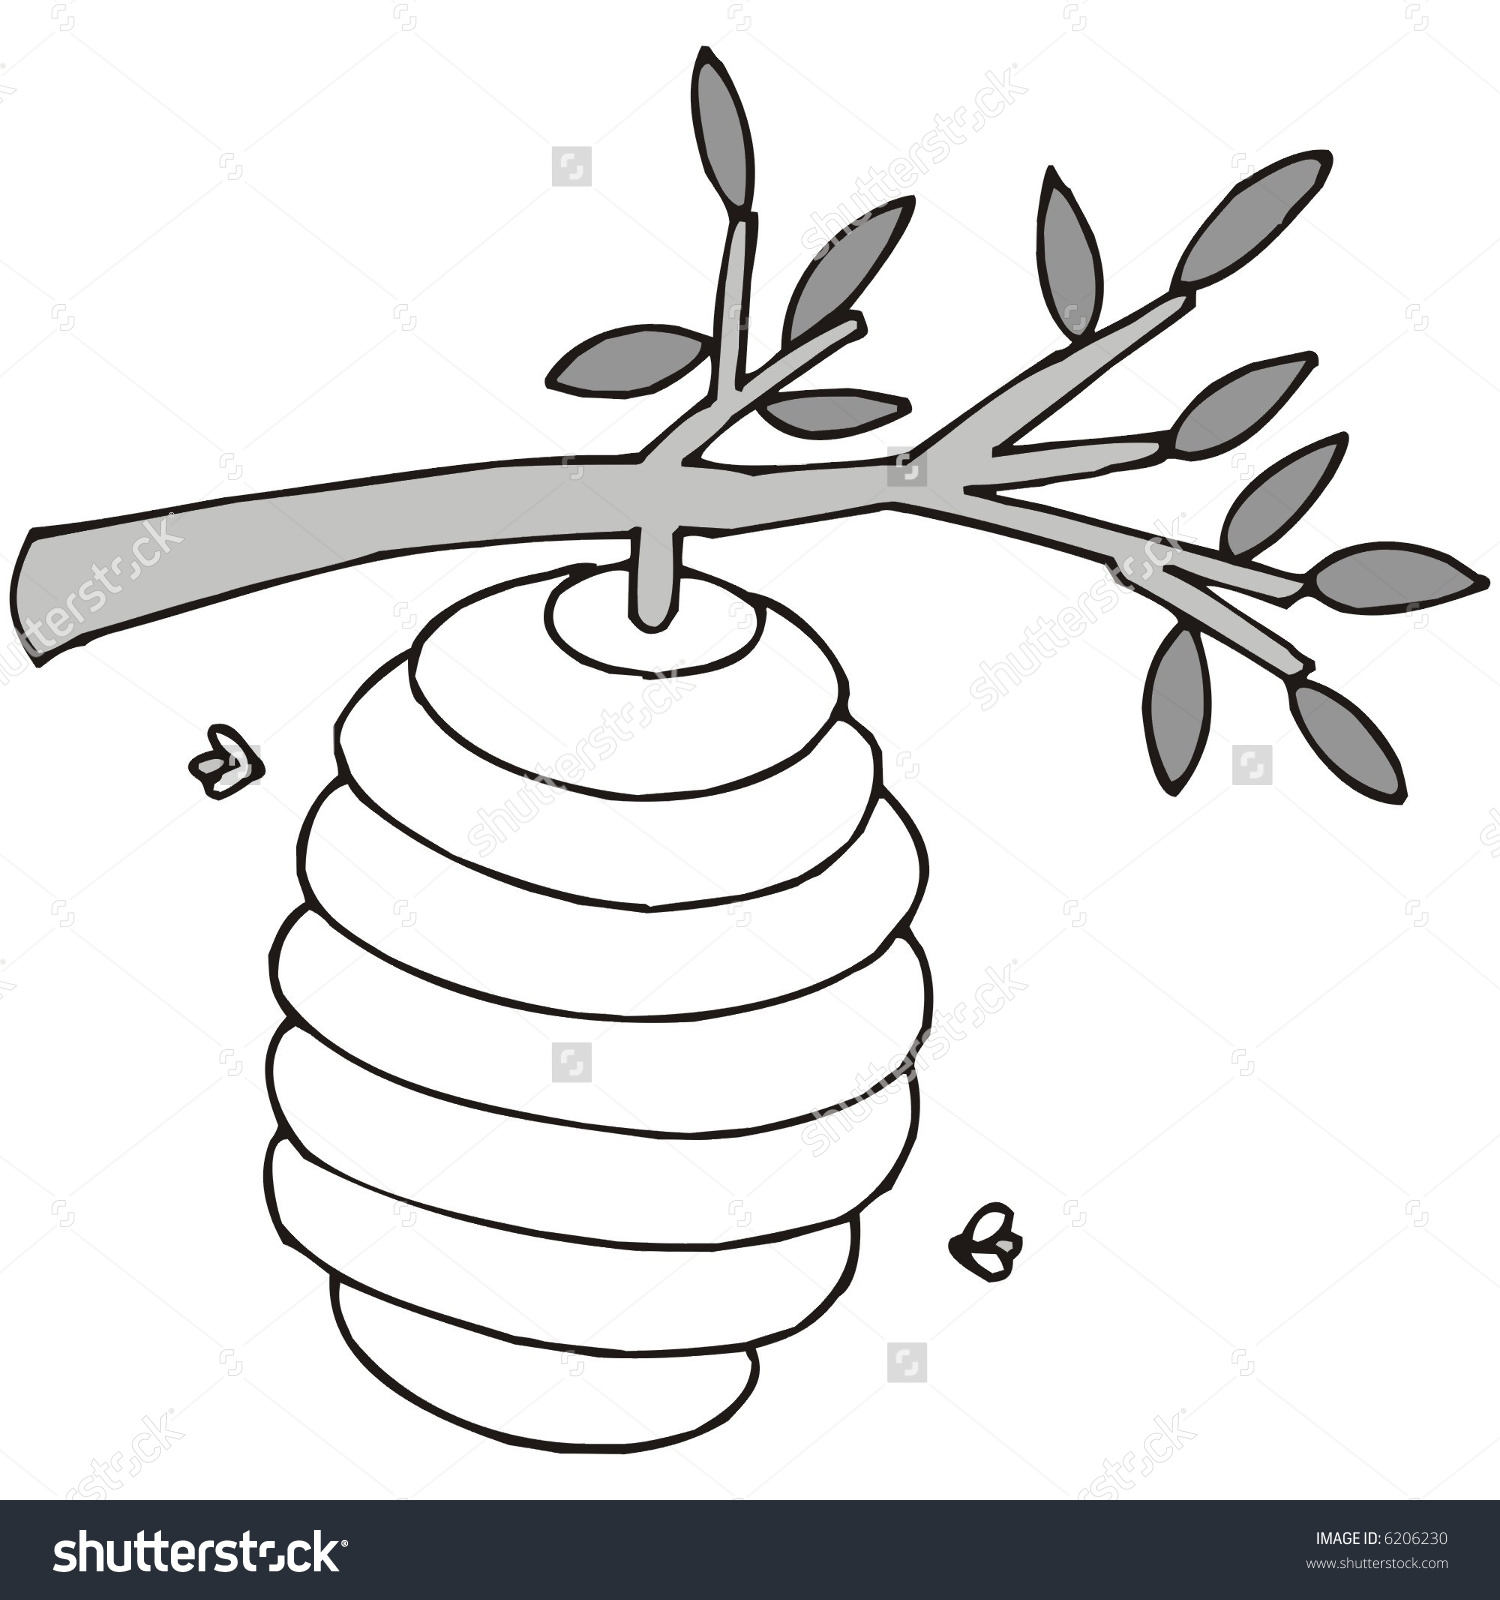 Beehive clipart tree clipart. Clip art bee hive